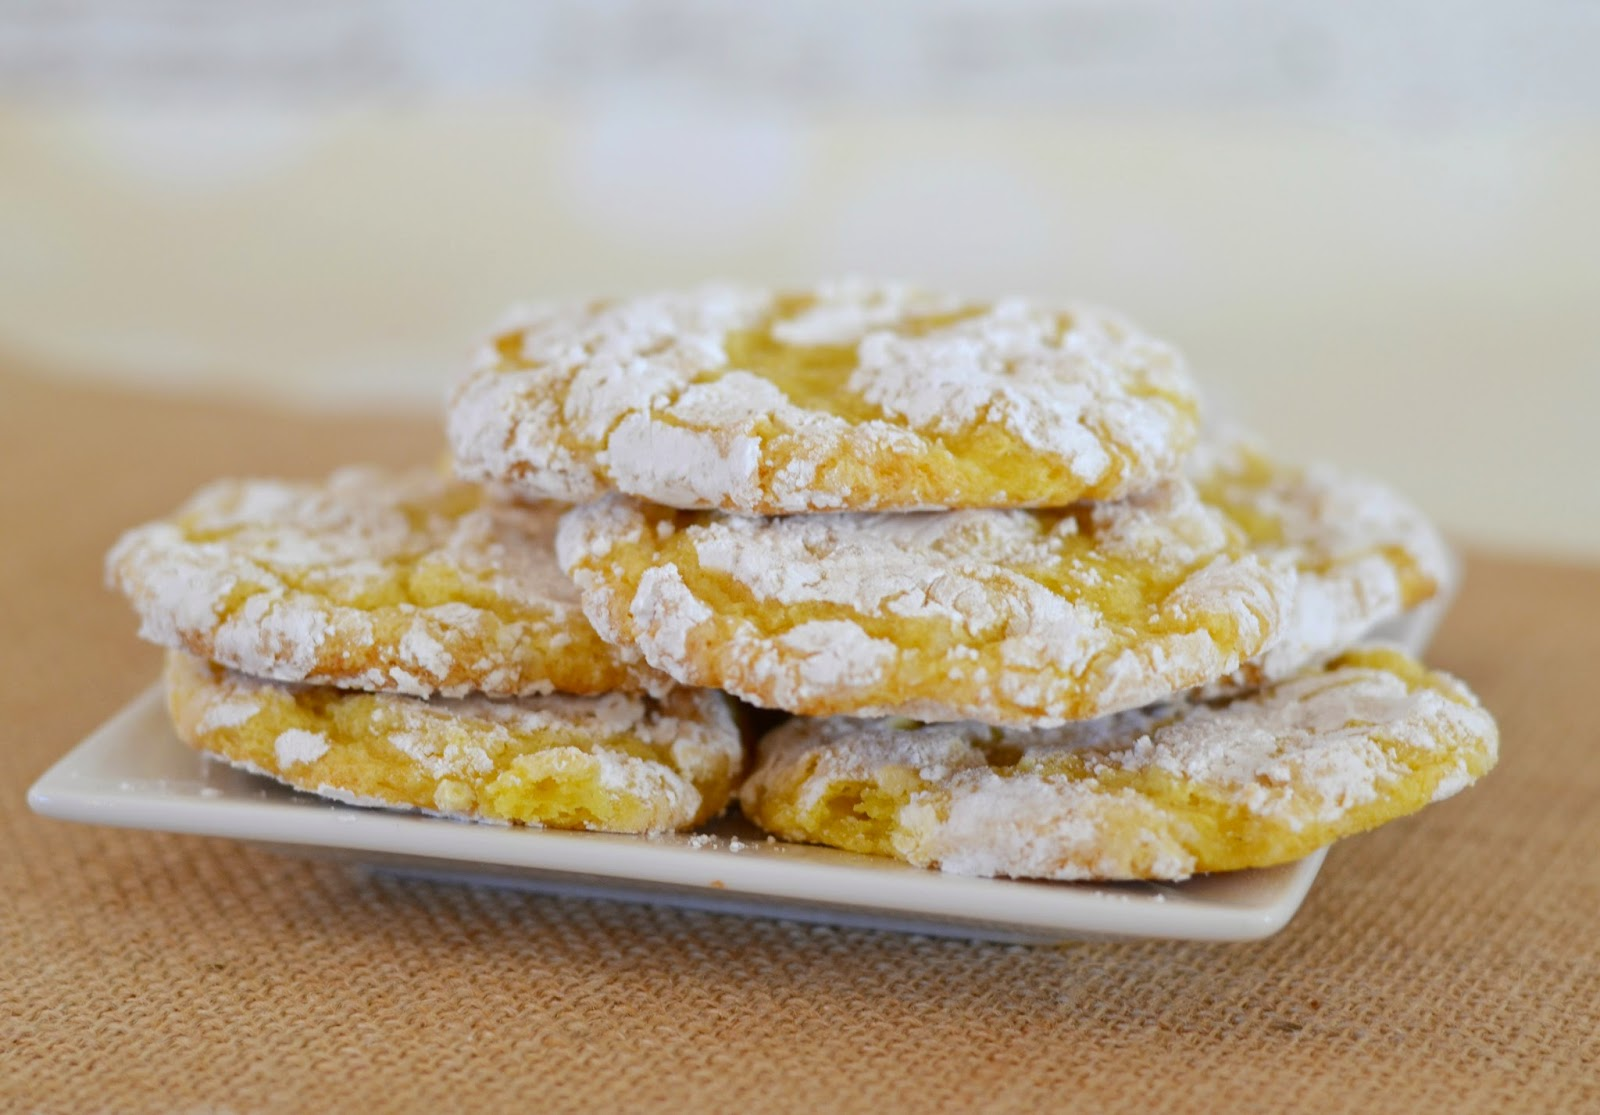 Grandma's Lemon Crinkle Cookies #Recipe.  Lemon Crinkle Cookies.  Lemon Cookies.  Easy Cool Whip Lemon Cookies.  Lemon Cookies with Cool Whip.  Lemon Desserts.  Crinkle Cookies.  Cookie Recipes.